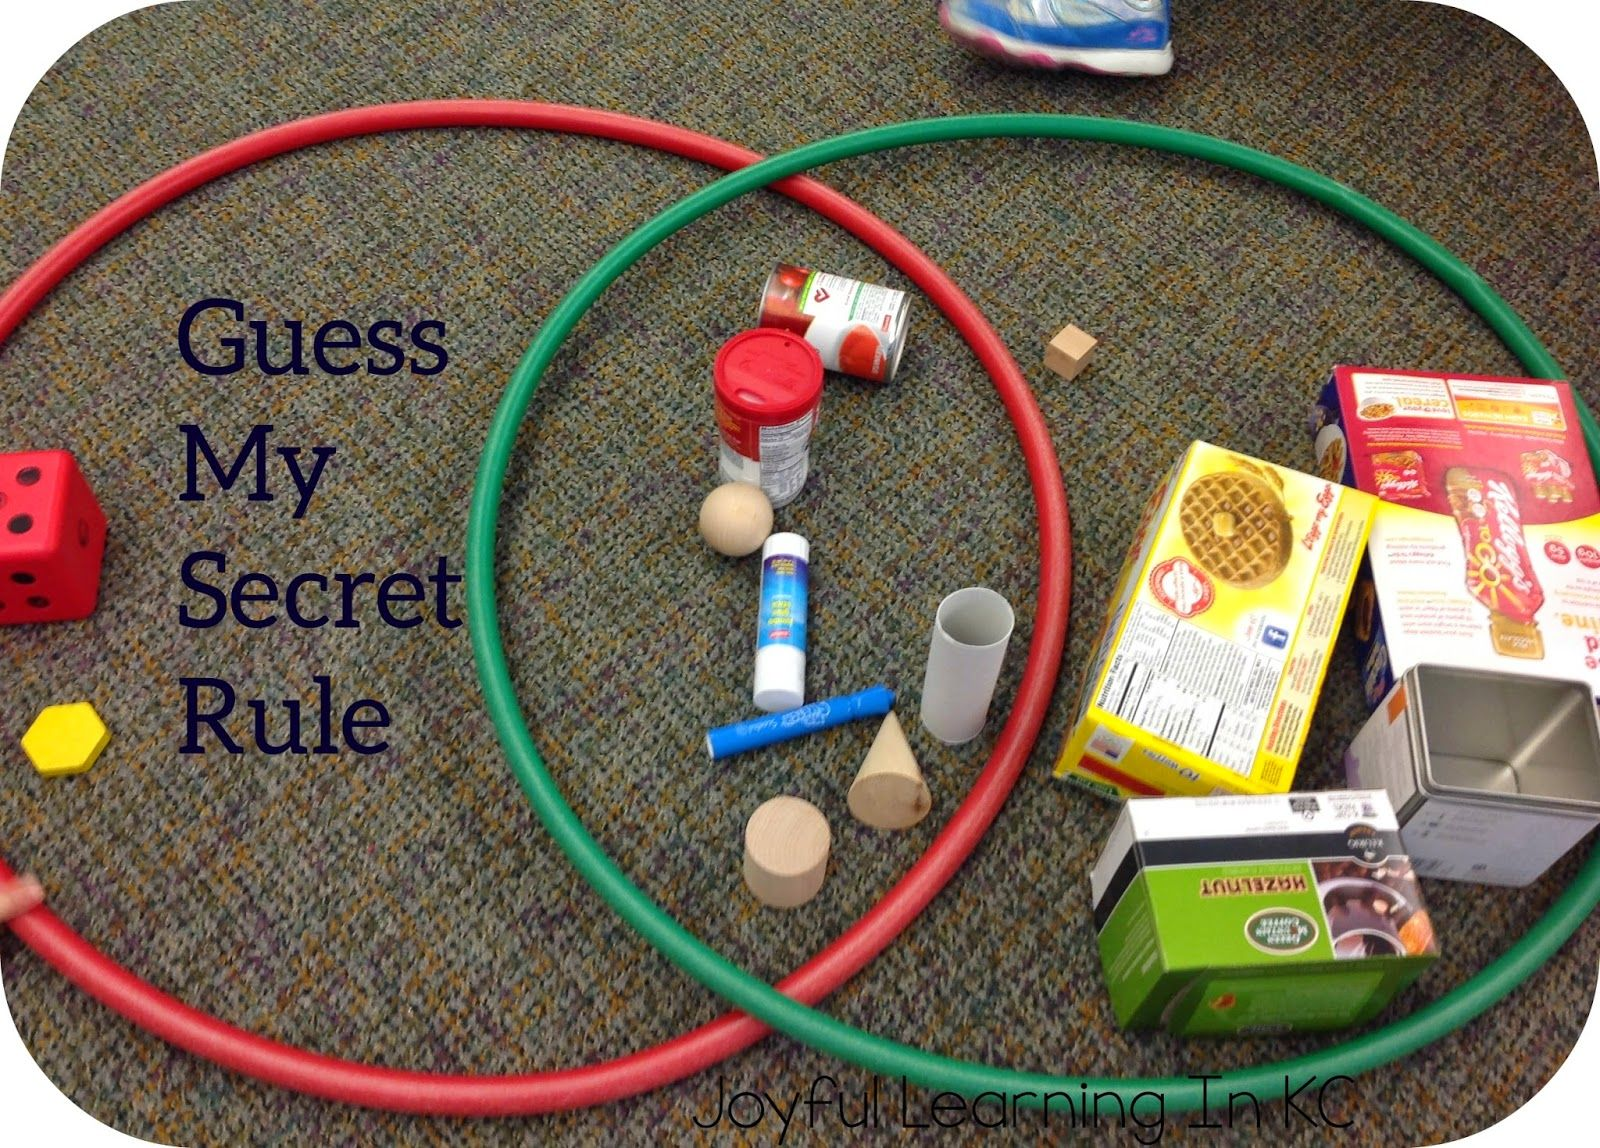 venn diagram sorting games doorbell chime wiring guess my secret rule silent math game great